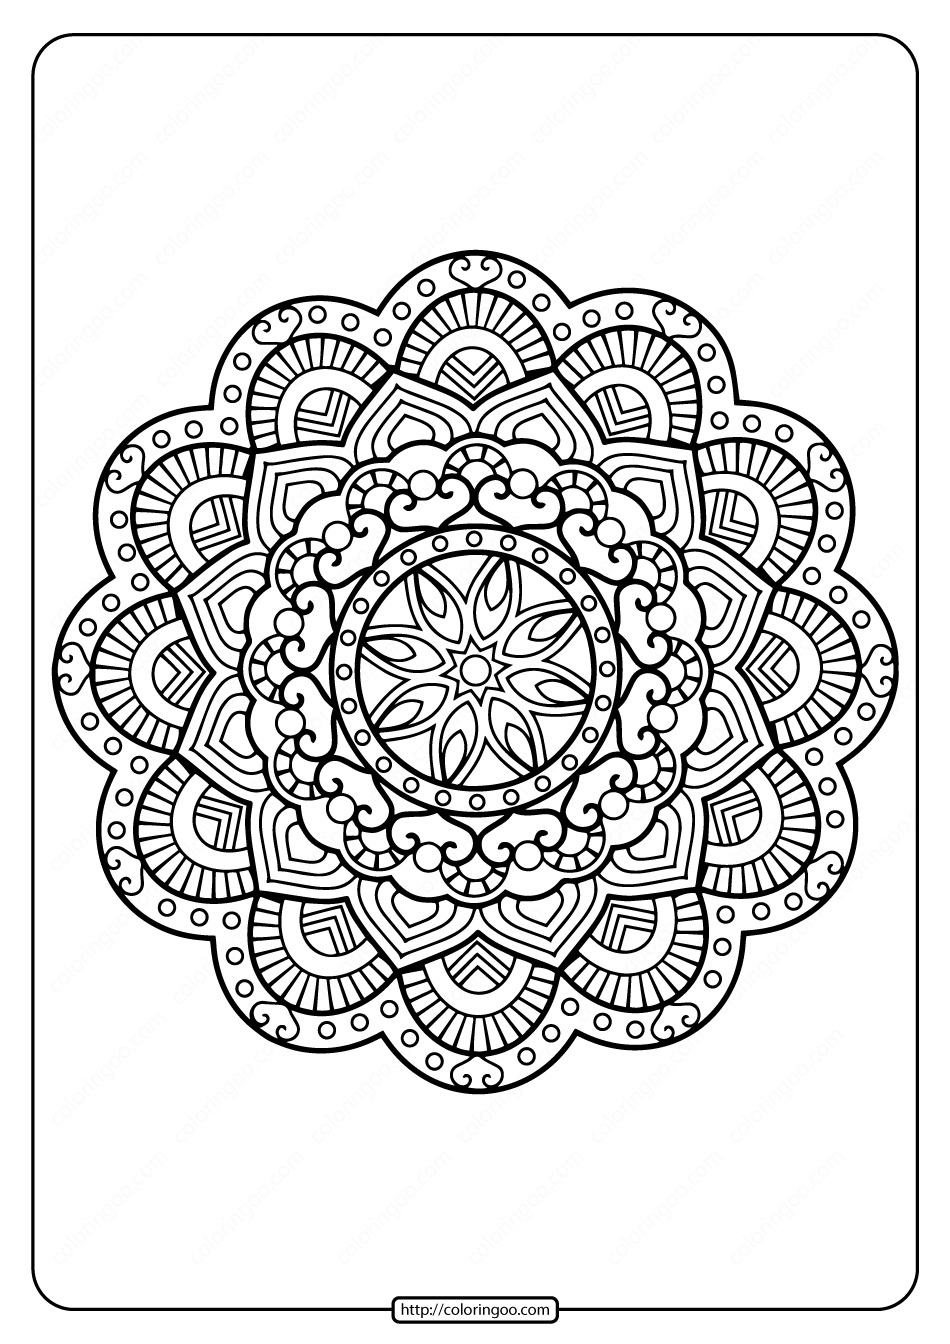 Printable Floral Mandala PDF Coloring Pages 32